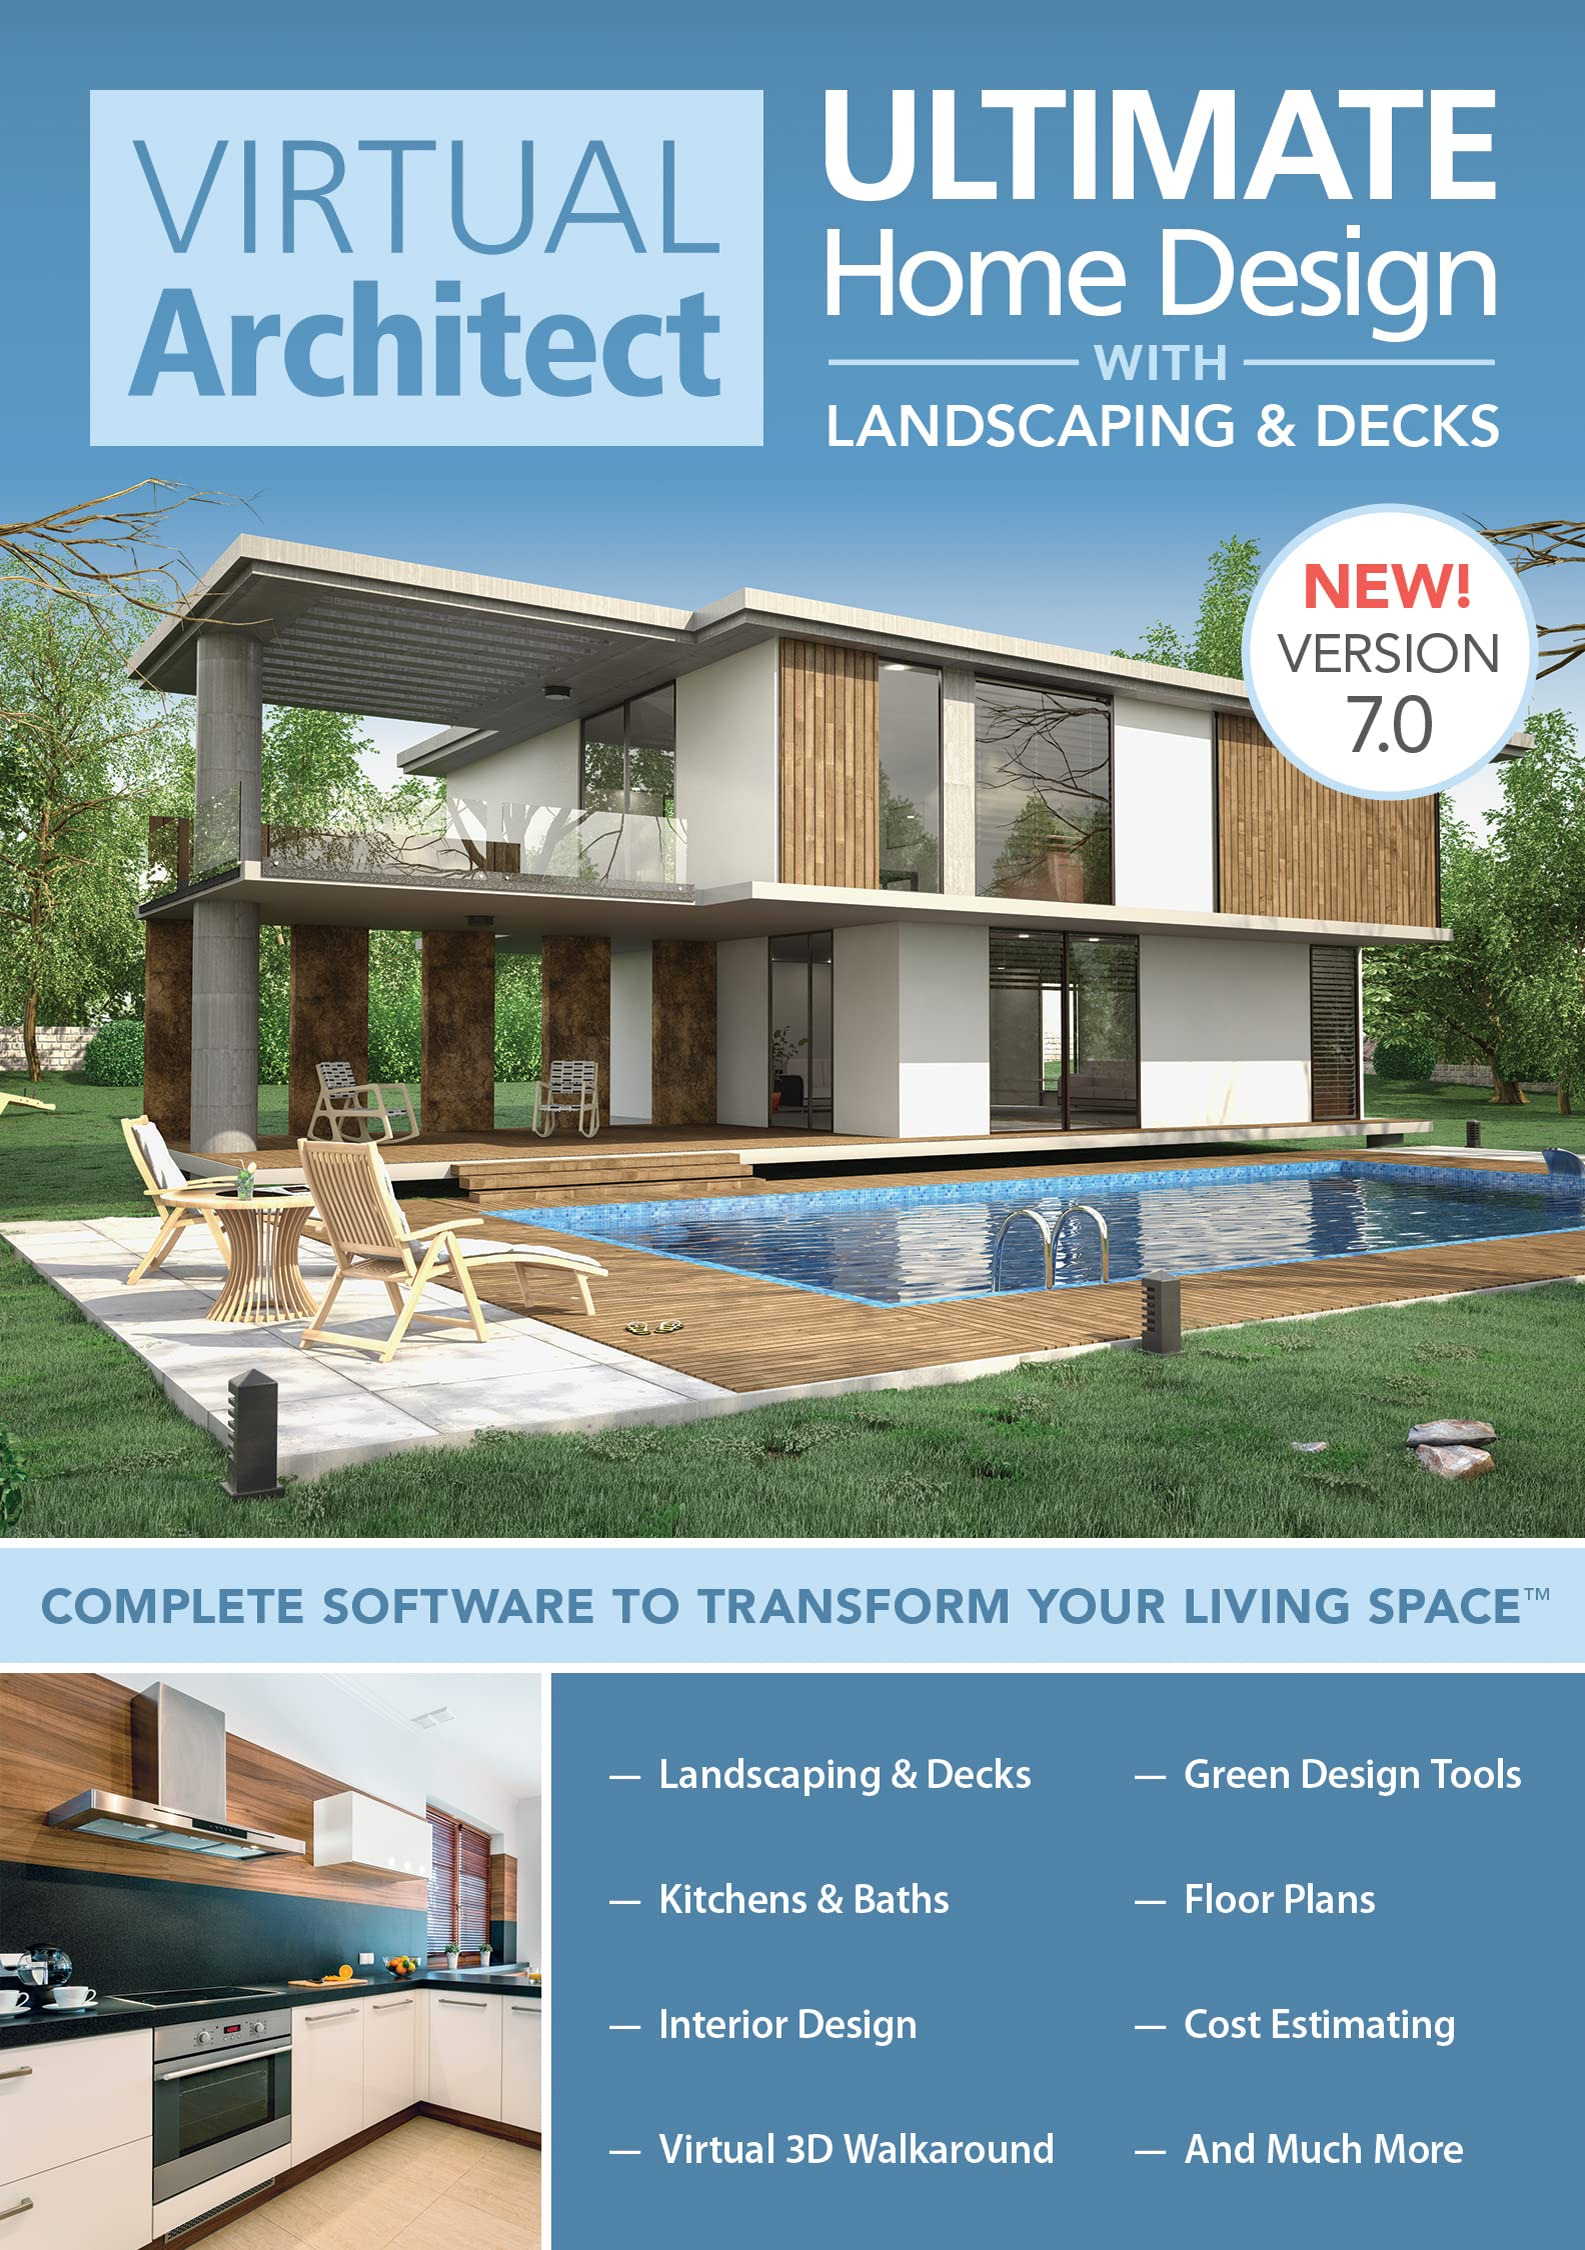 House Plans Free software Fresh Virtual Architect Ultimate Home Design with Landscaping and Decks 7 0 [download]